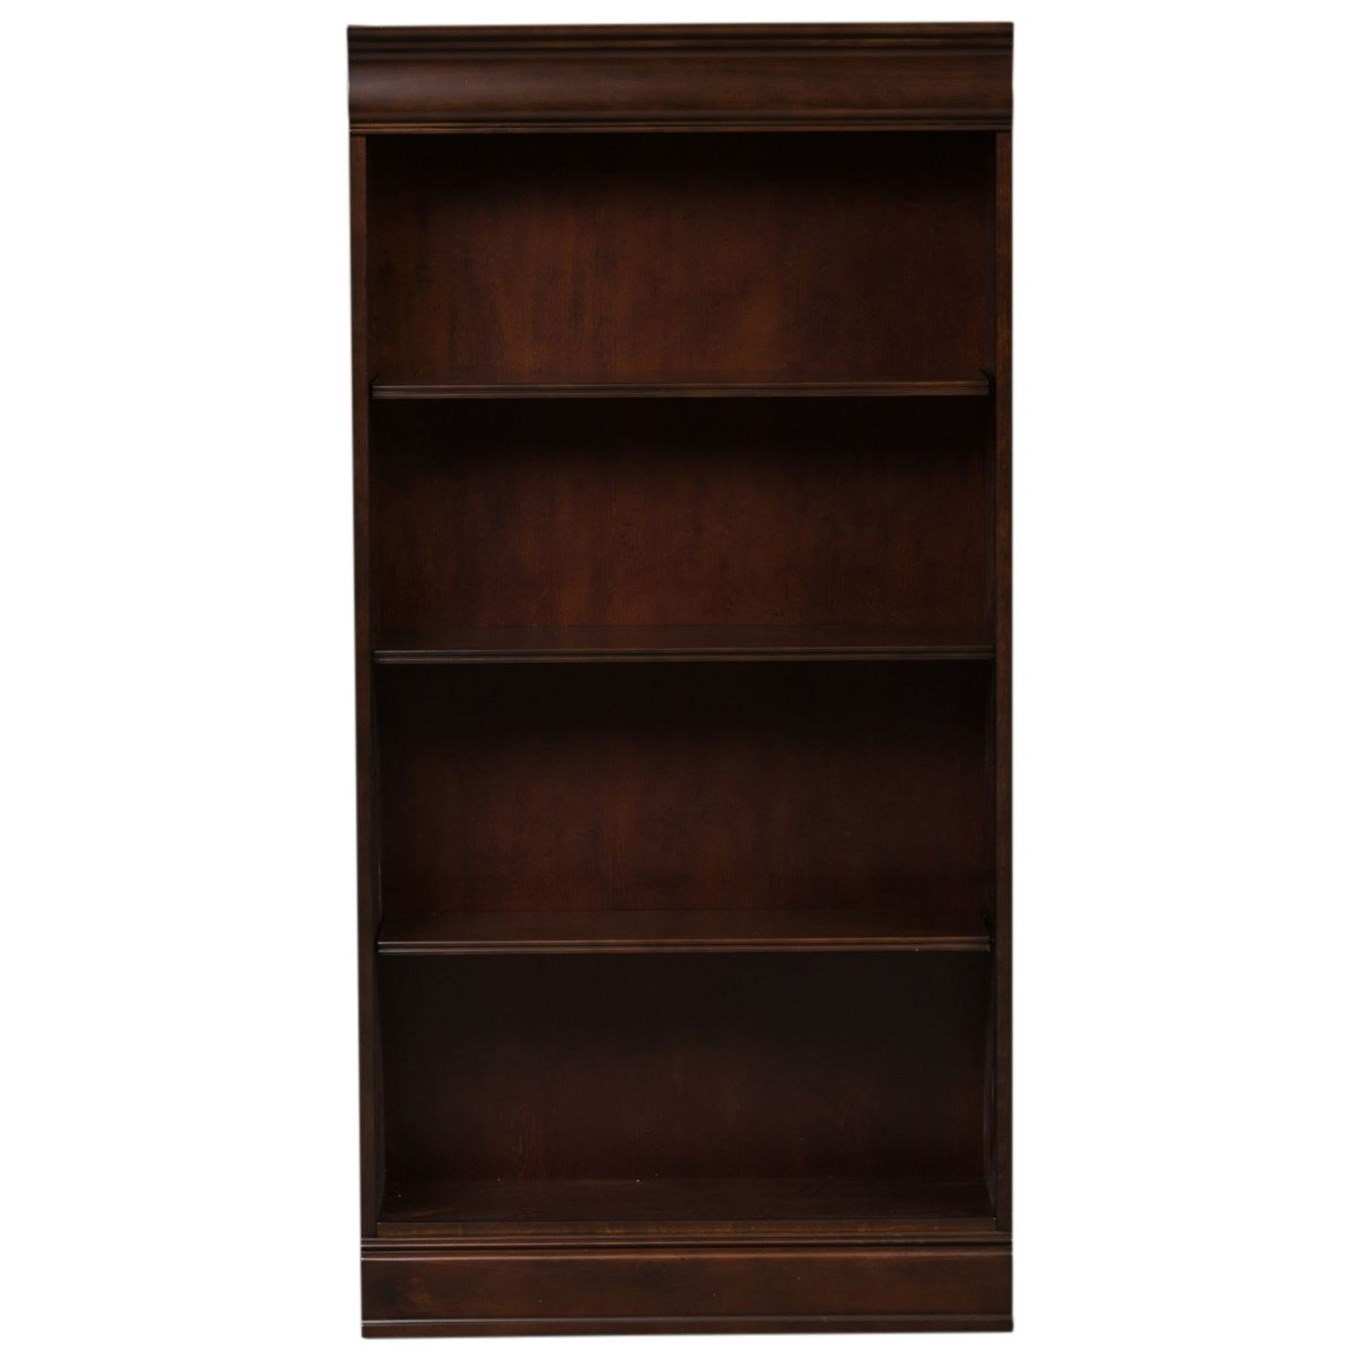 Brayton Manor Jr Executive 60 Inch Bookcase by Libby at Walker's Furniture